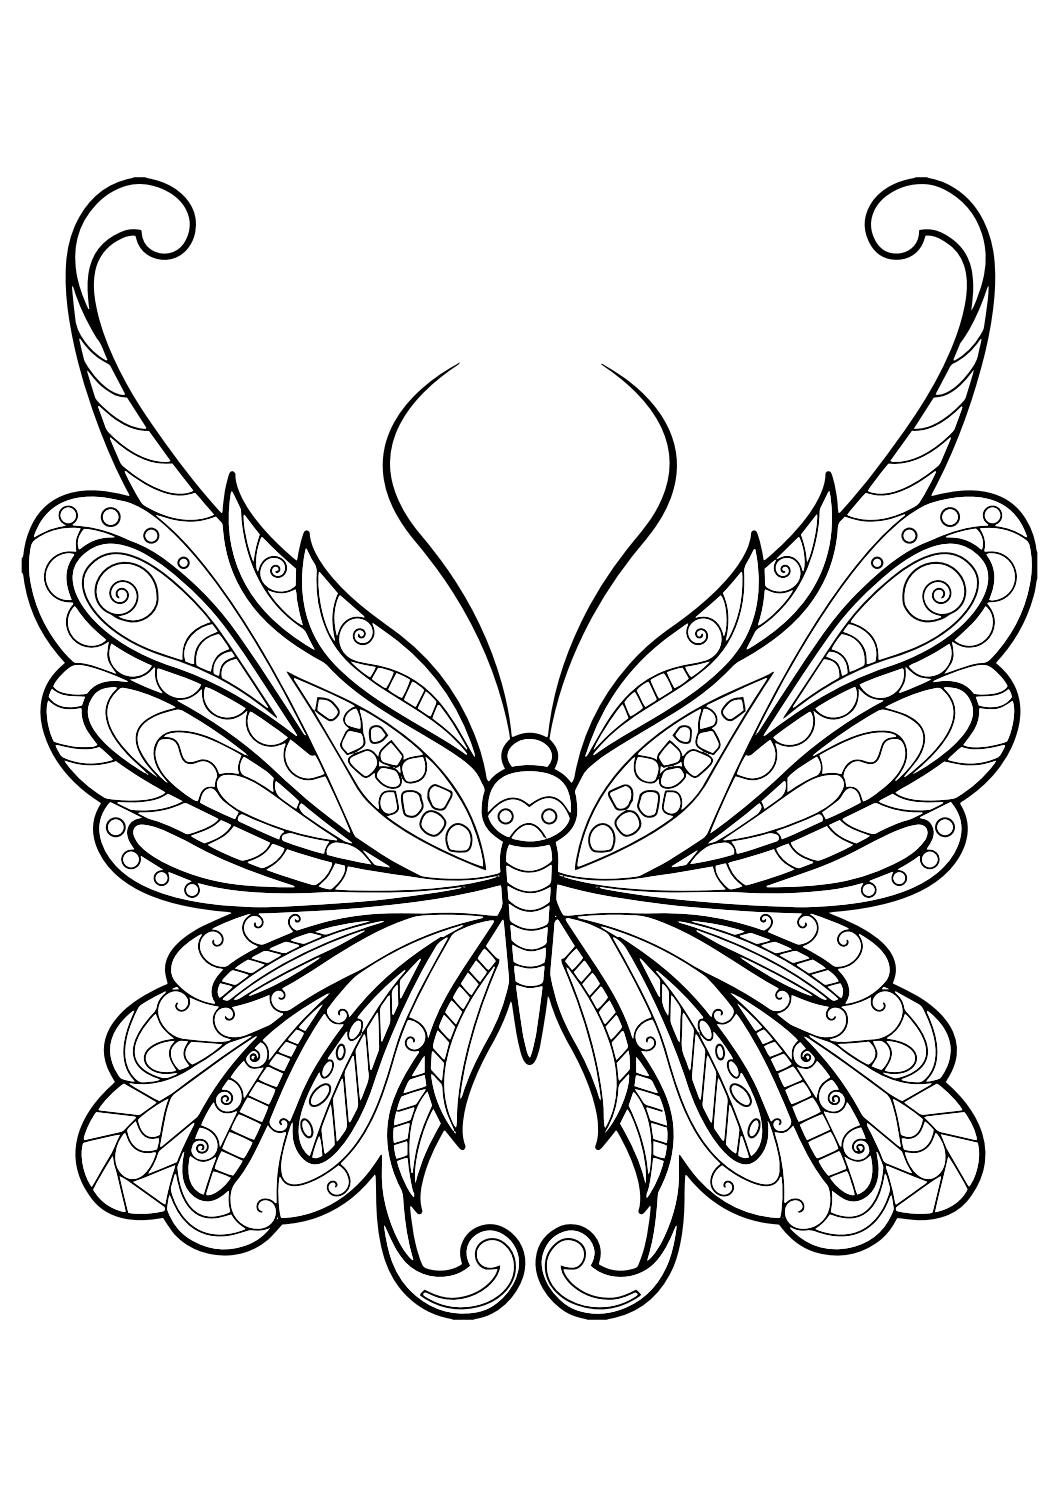 new monarch butterfly coloring page viewing gallery for monarch collection